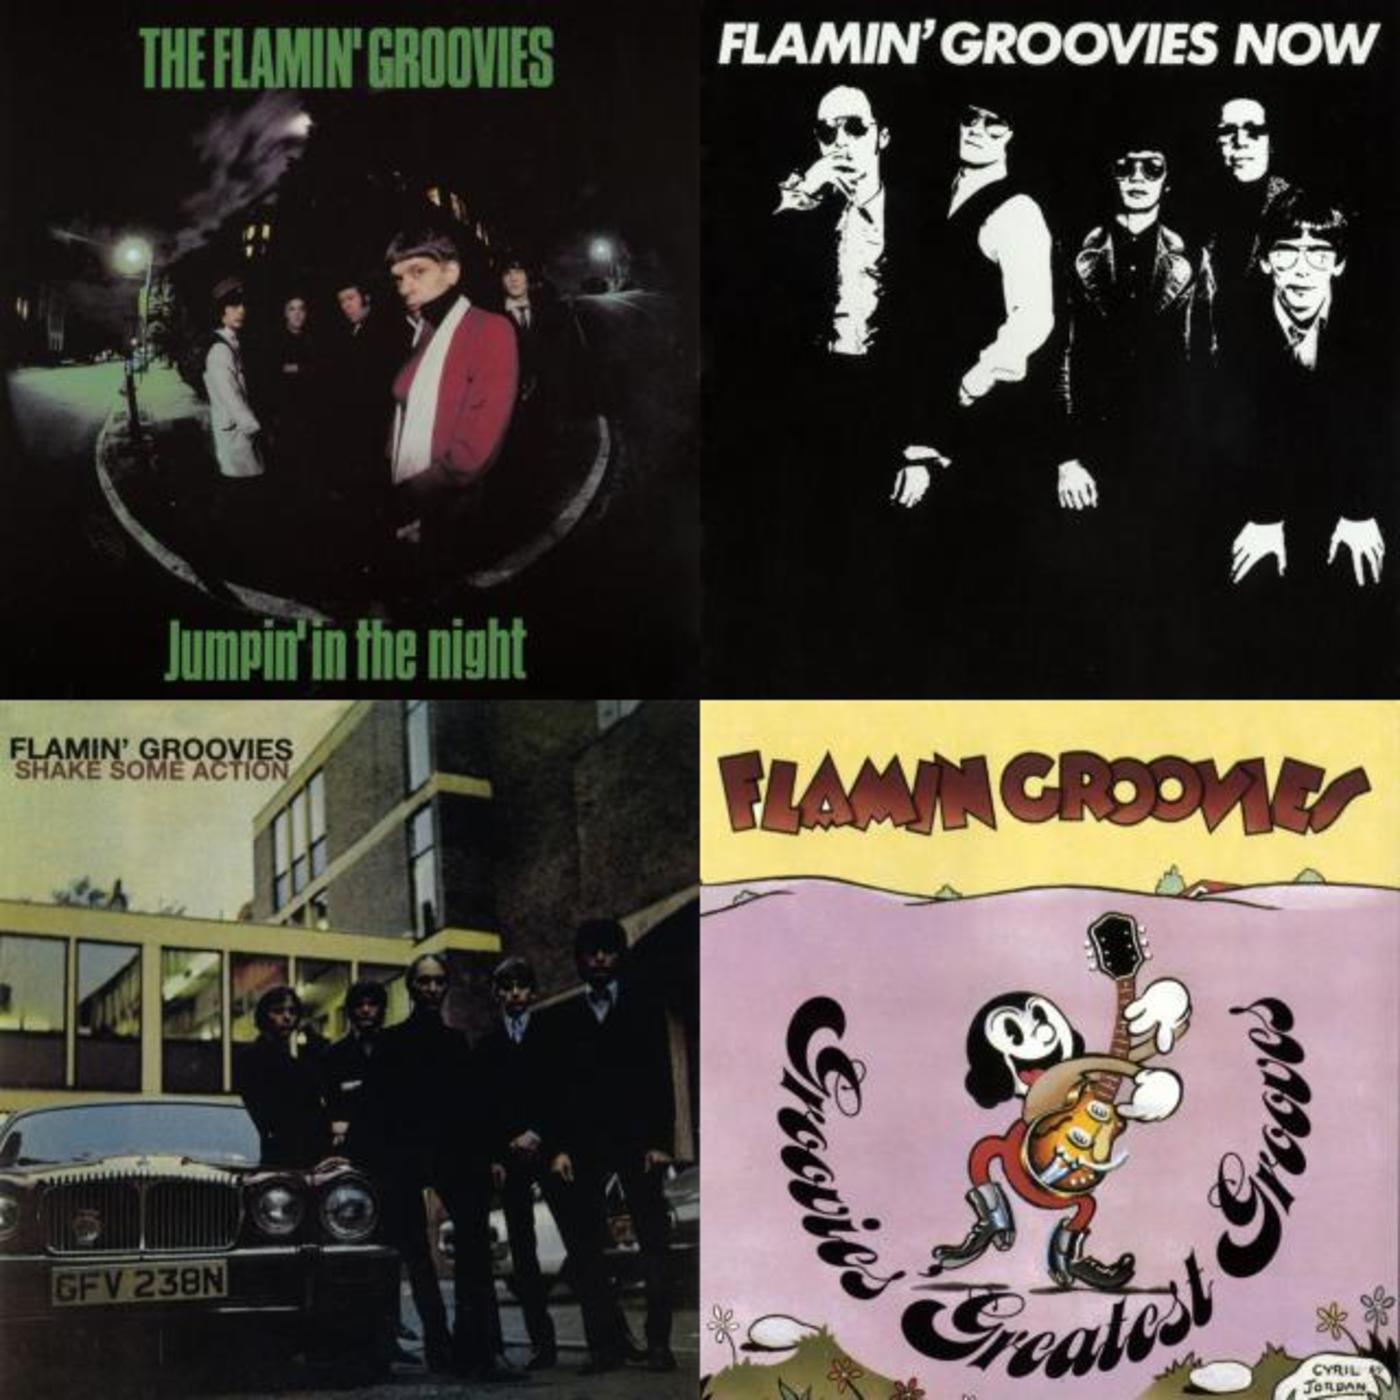 Get Your Groovies On - Flamin' Groovies